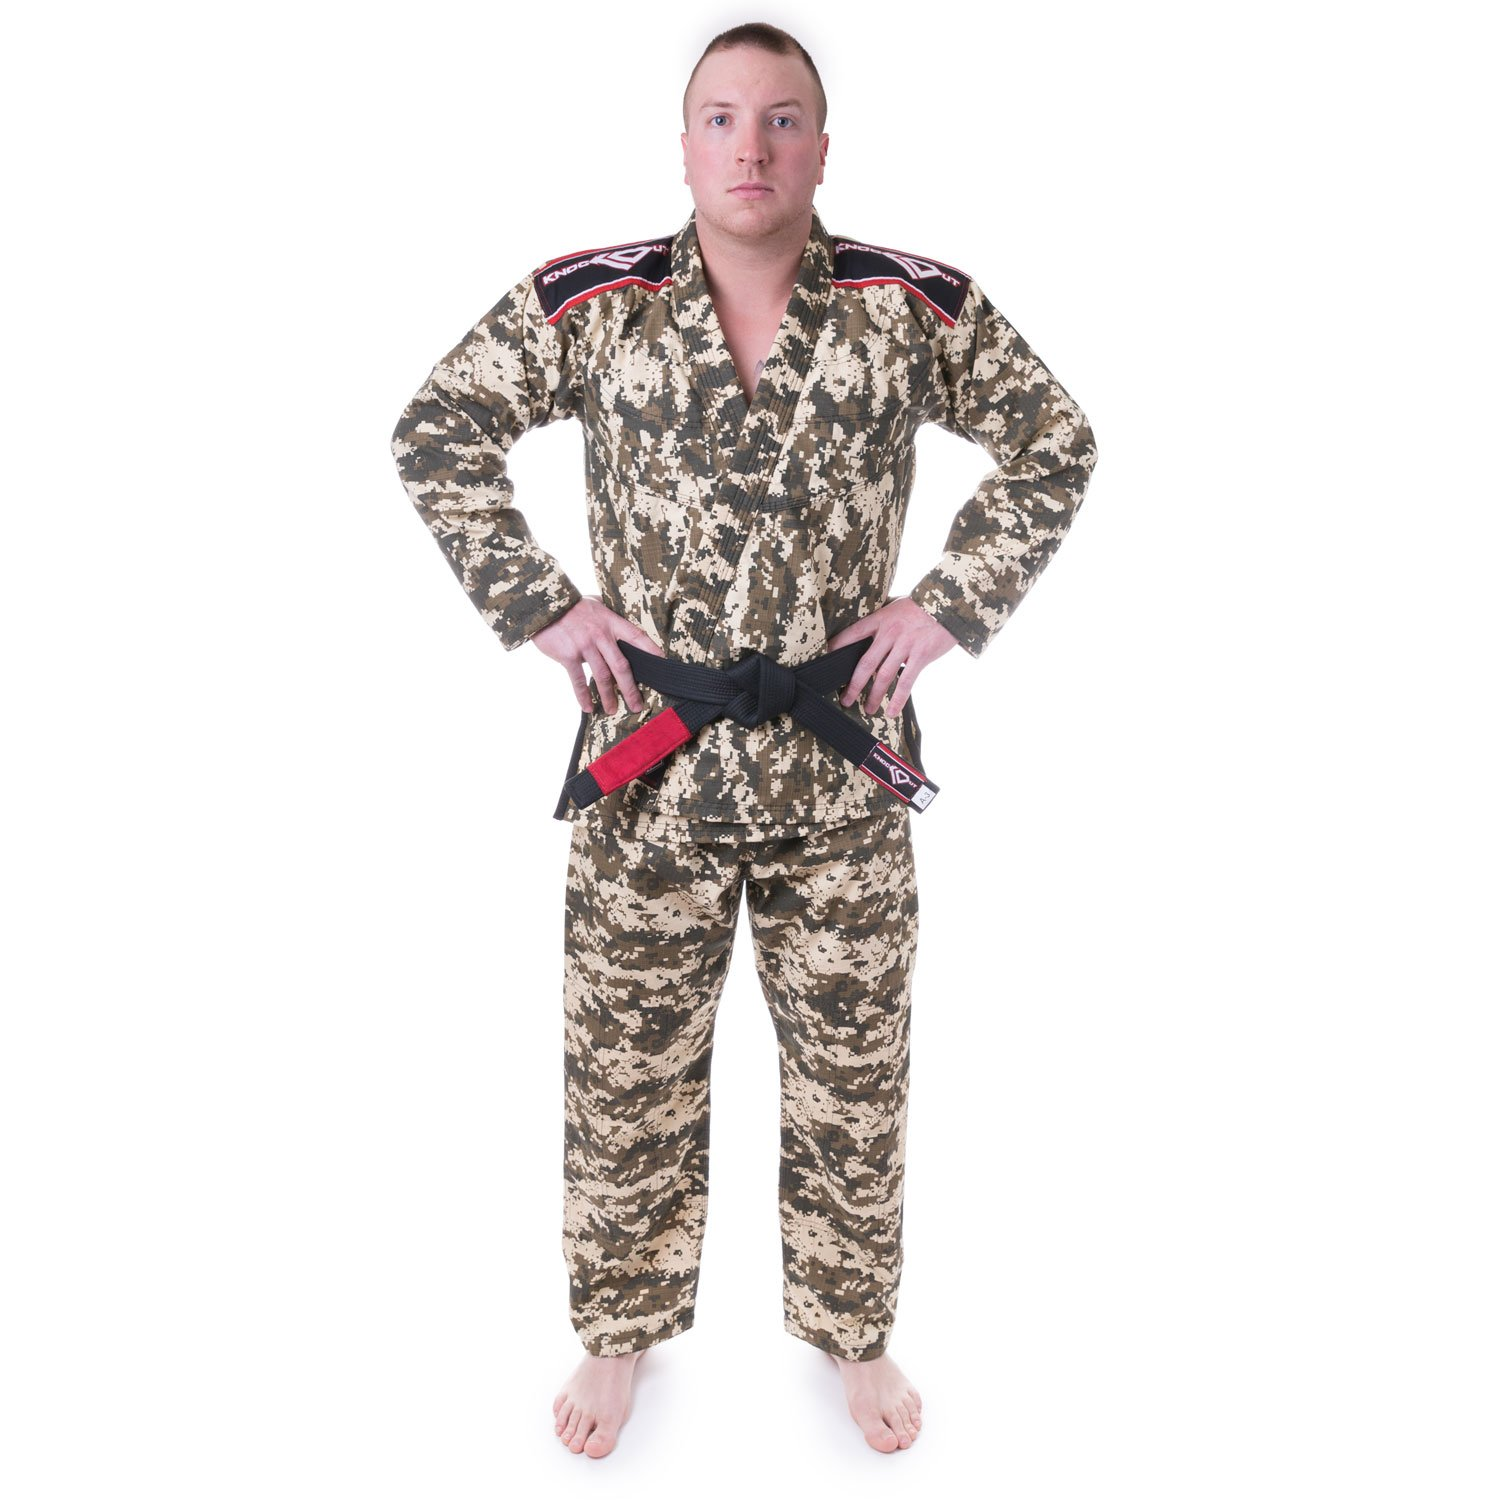 KO Sports Gear BJJ Gi Uniform Set - Green Camo - Summer Rip Stop - For Brazilian Jiu-jitsu, Grappling, and Mixed Martial Arts - Kimono and Pants by KO Sports Gear